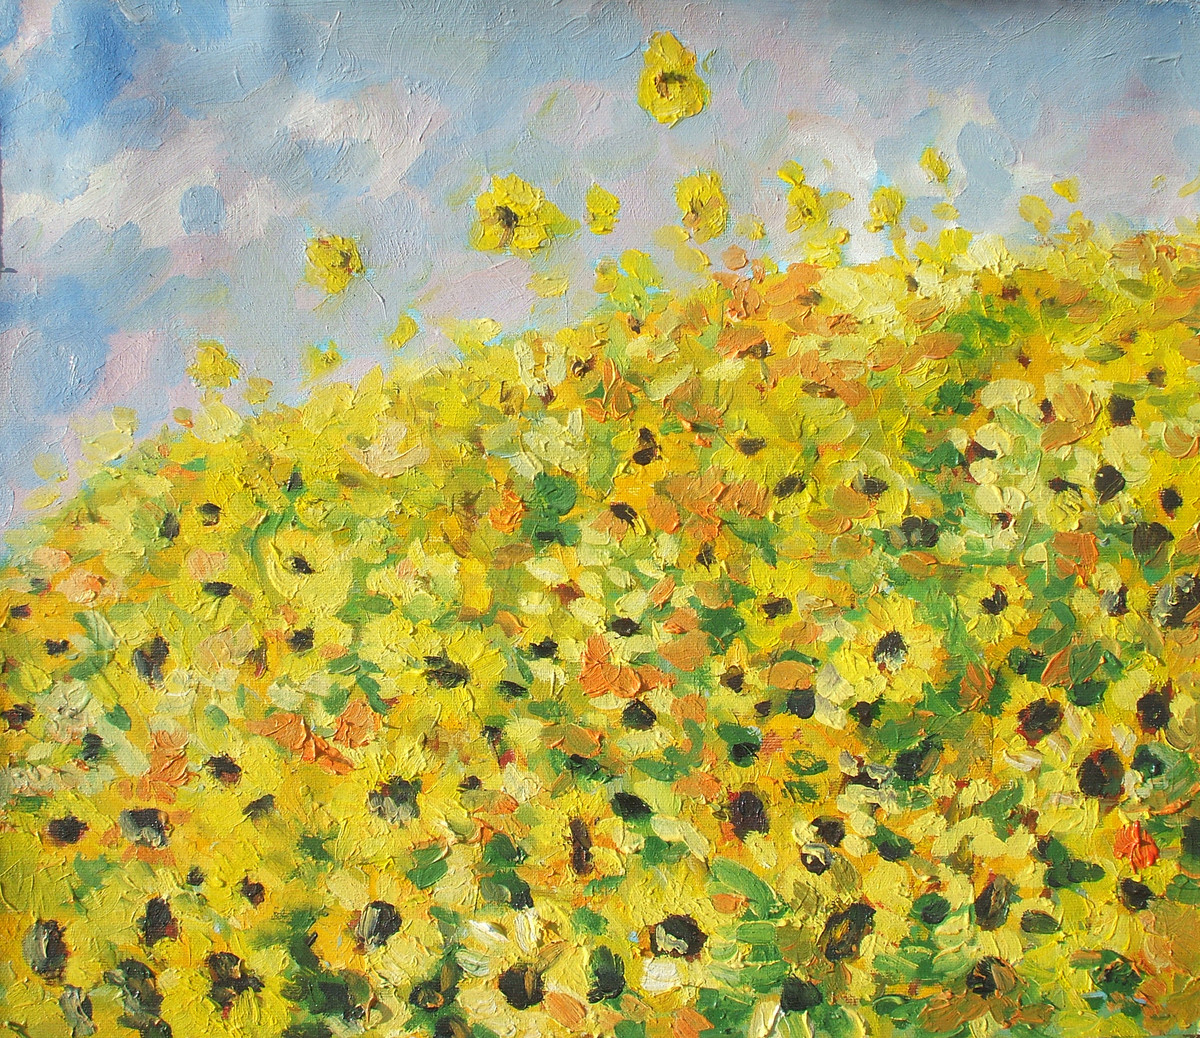 Sun Flowers In Summer - Oil paining by Animesh Roy